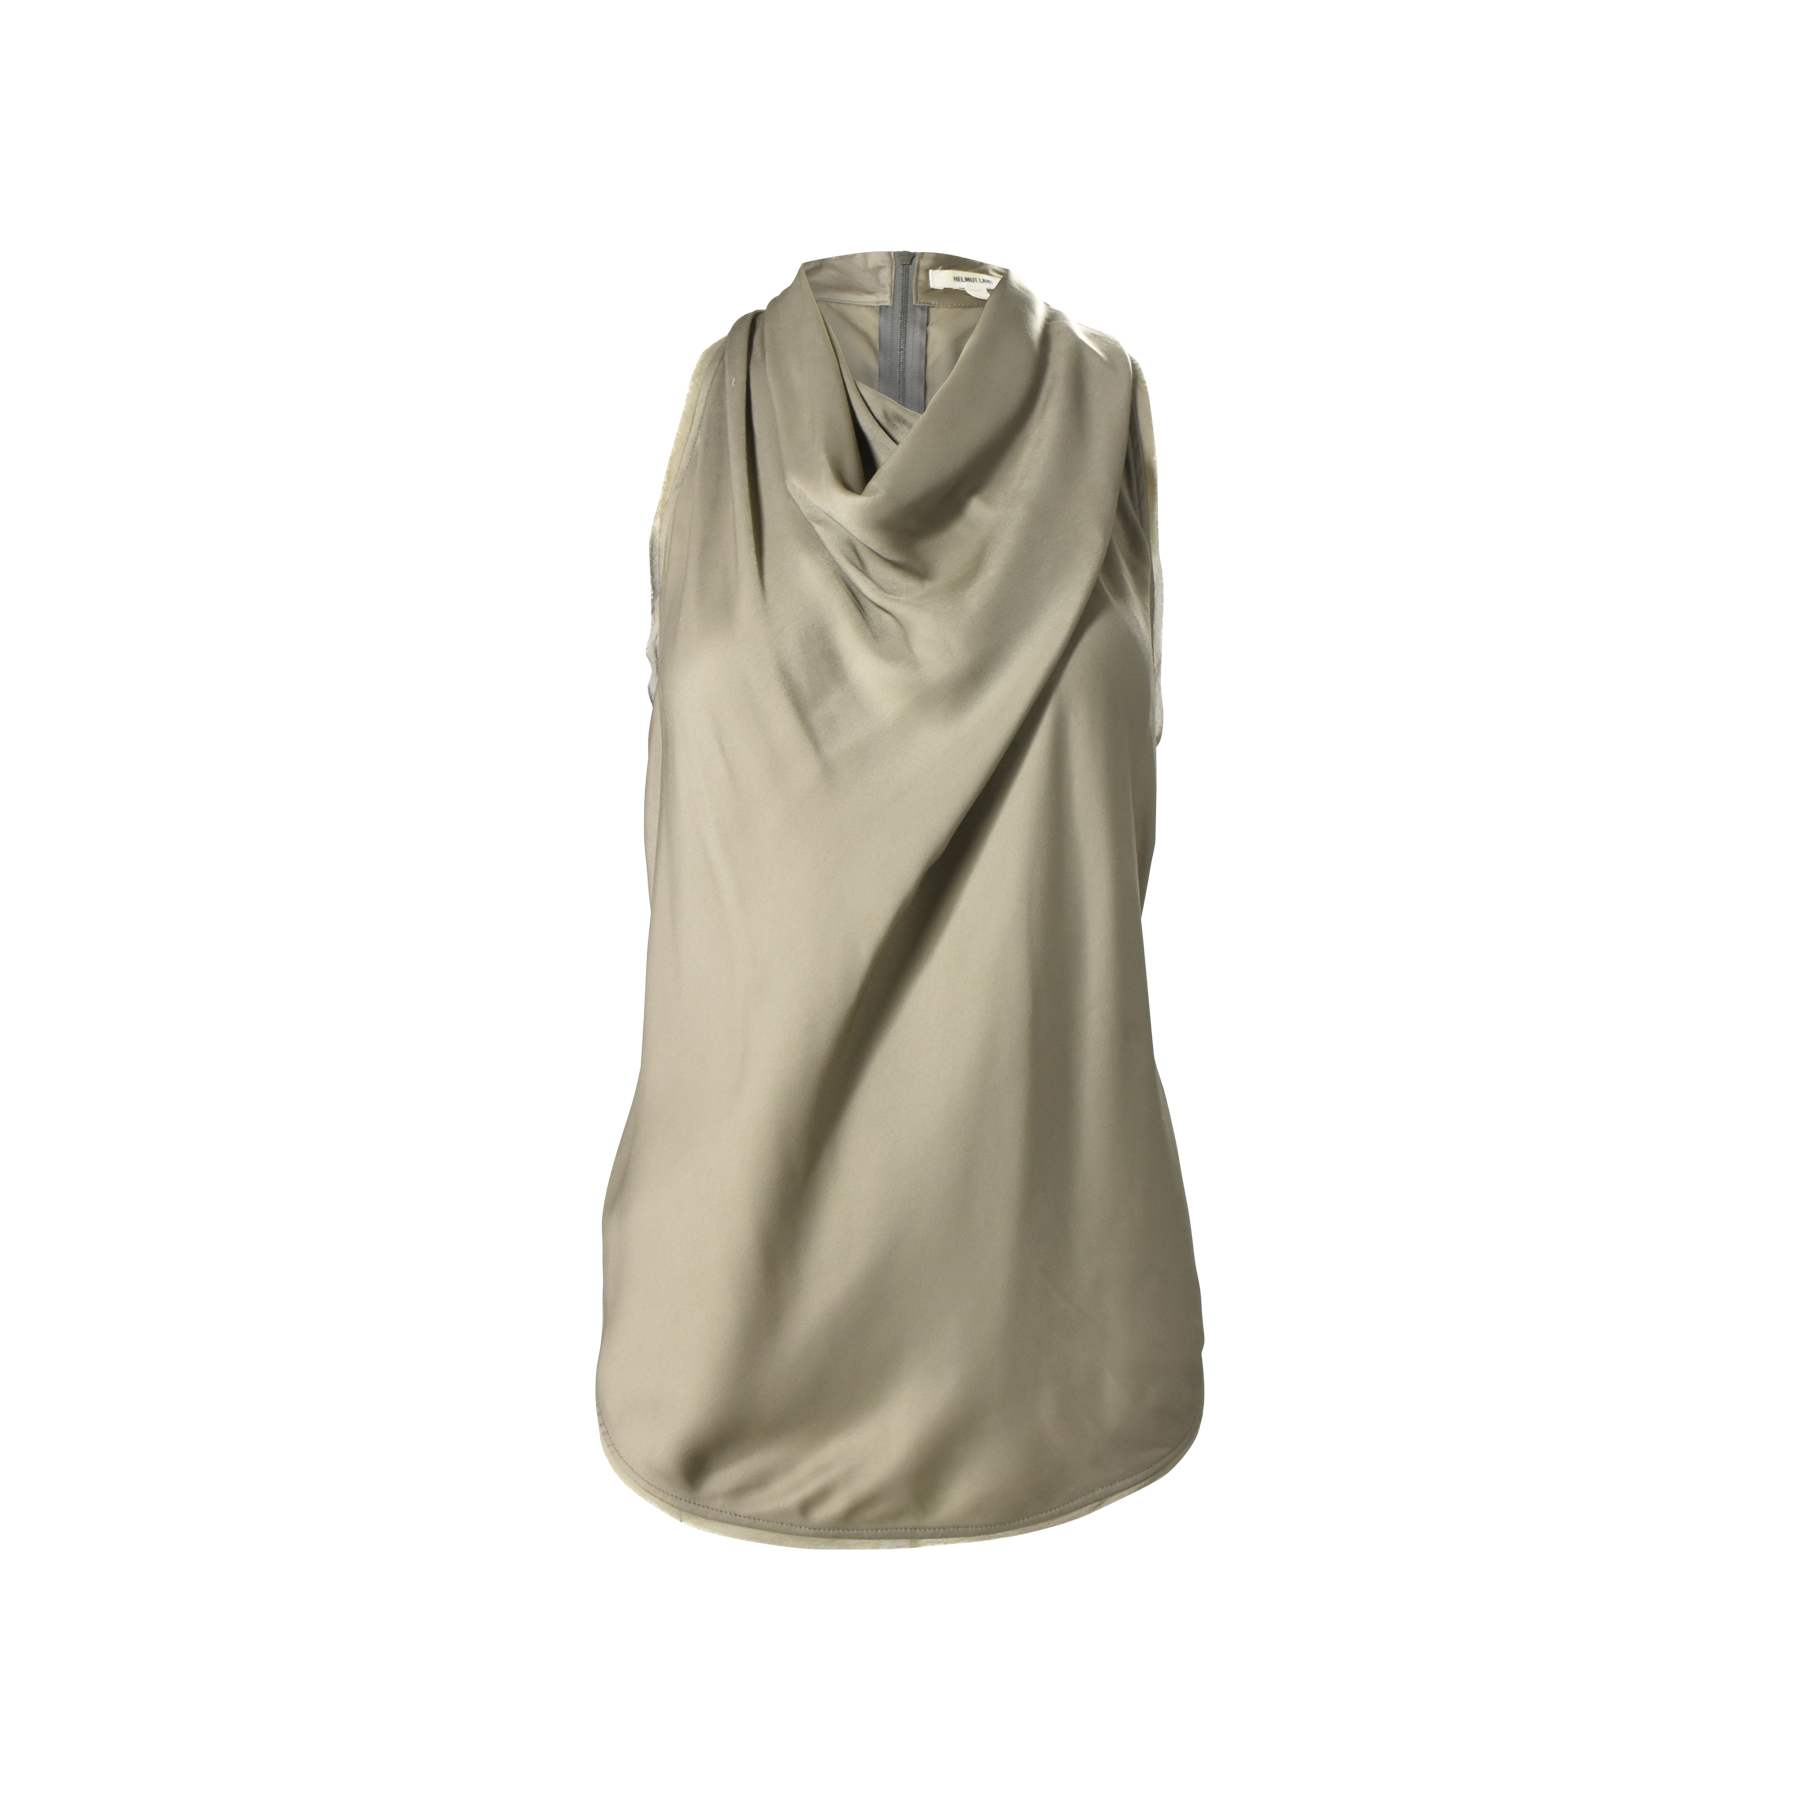 9faef8fb07fd02 Authentic Second Hand Helmut Lang Grey Cowl Neck Top (PSS-048-00114 ...